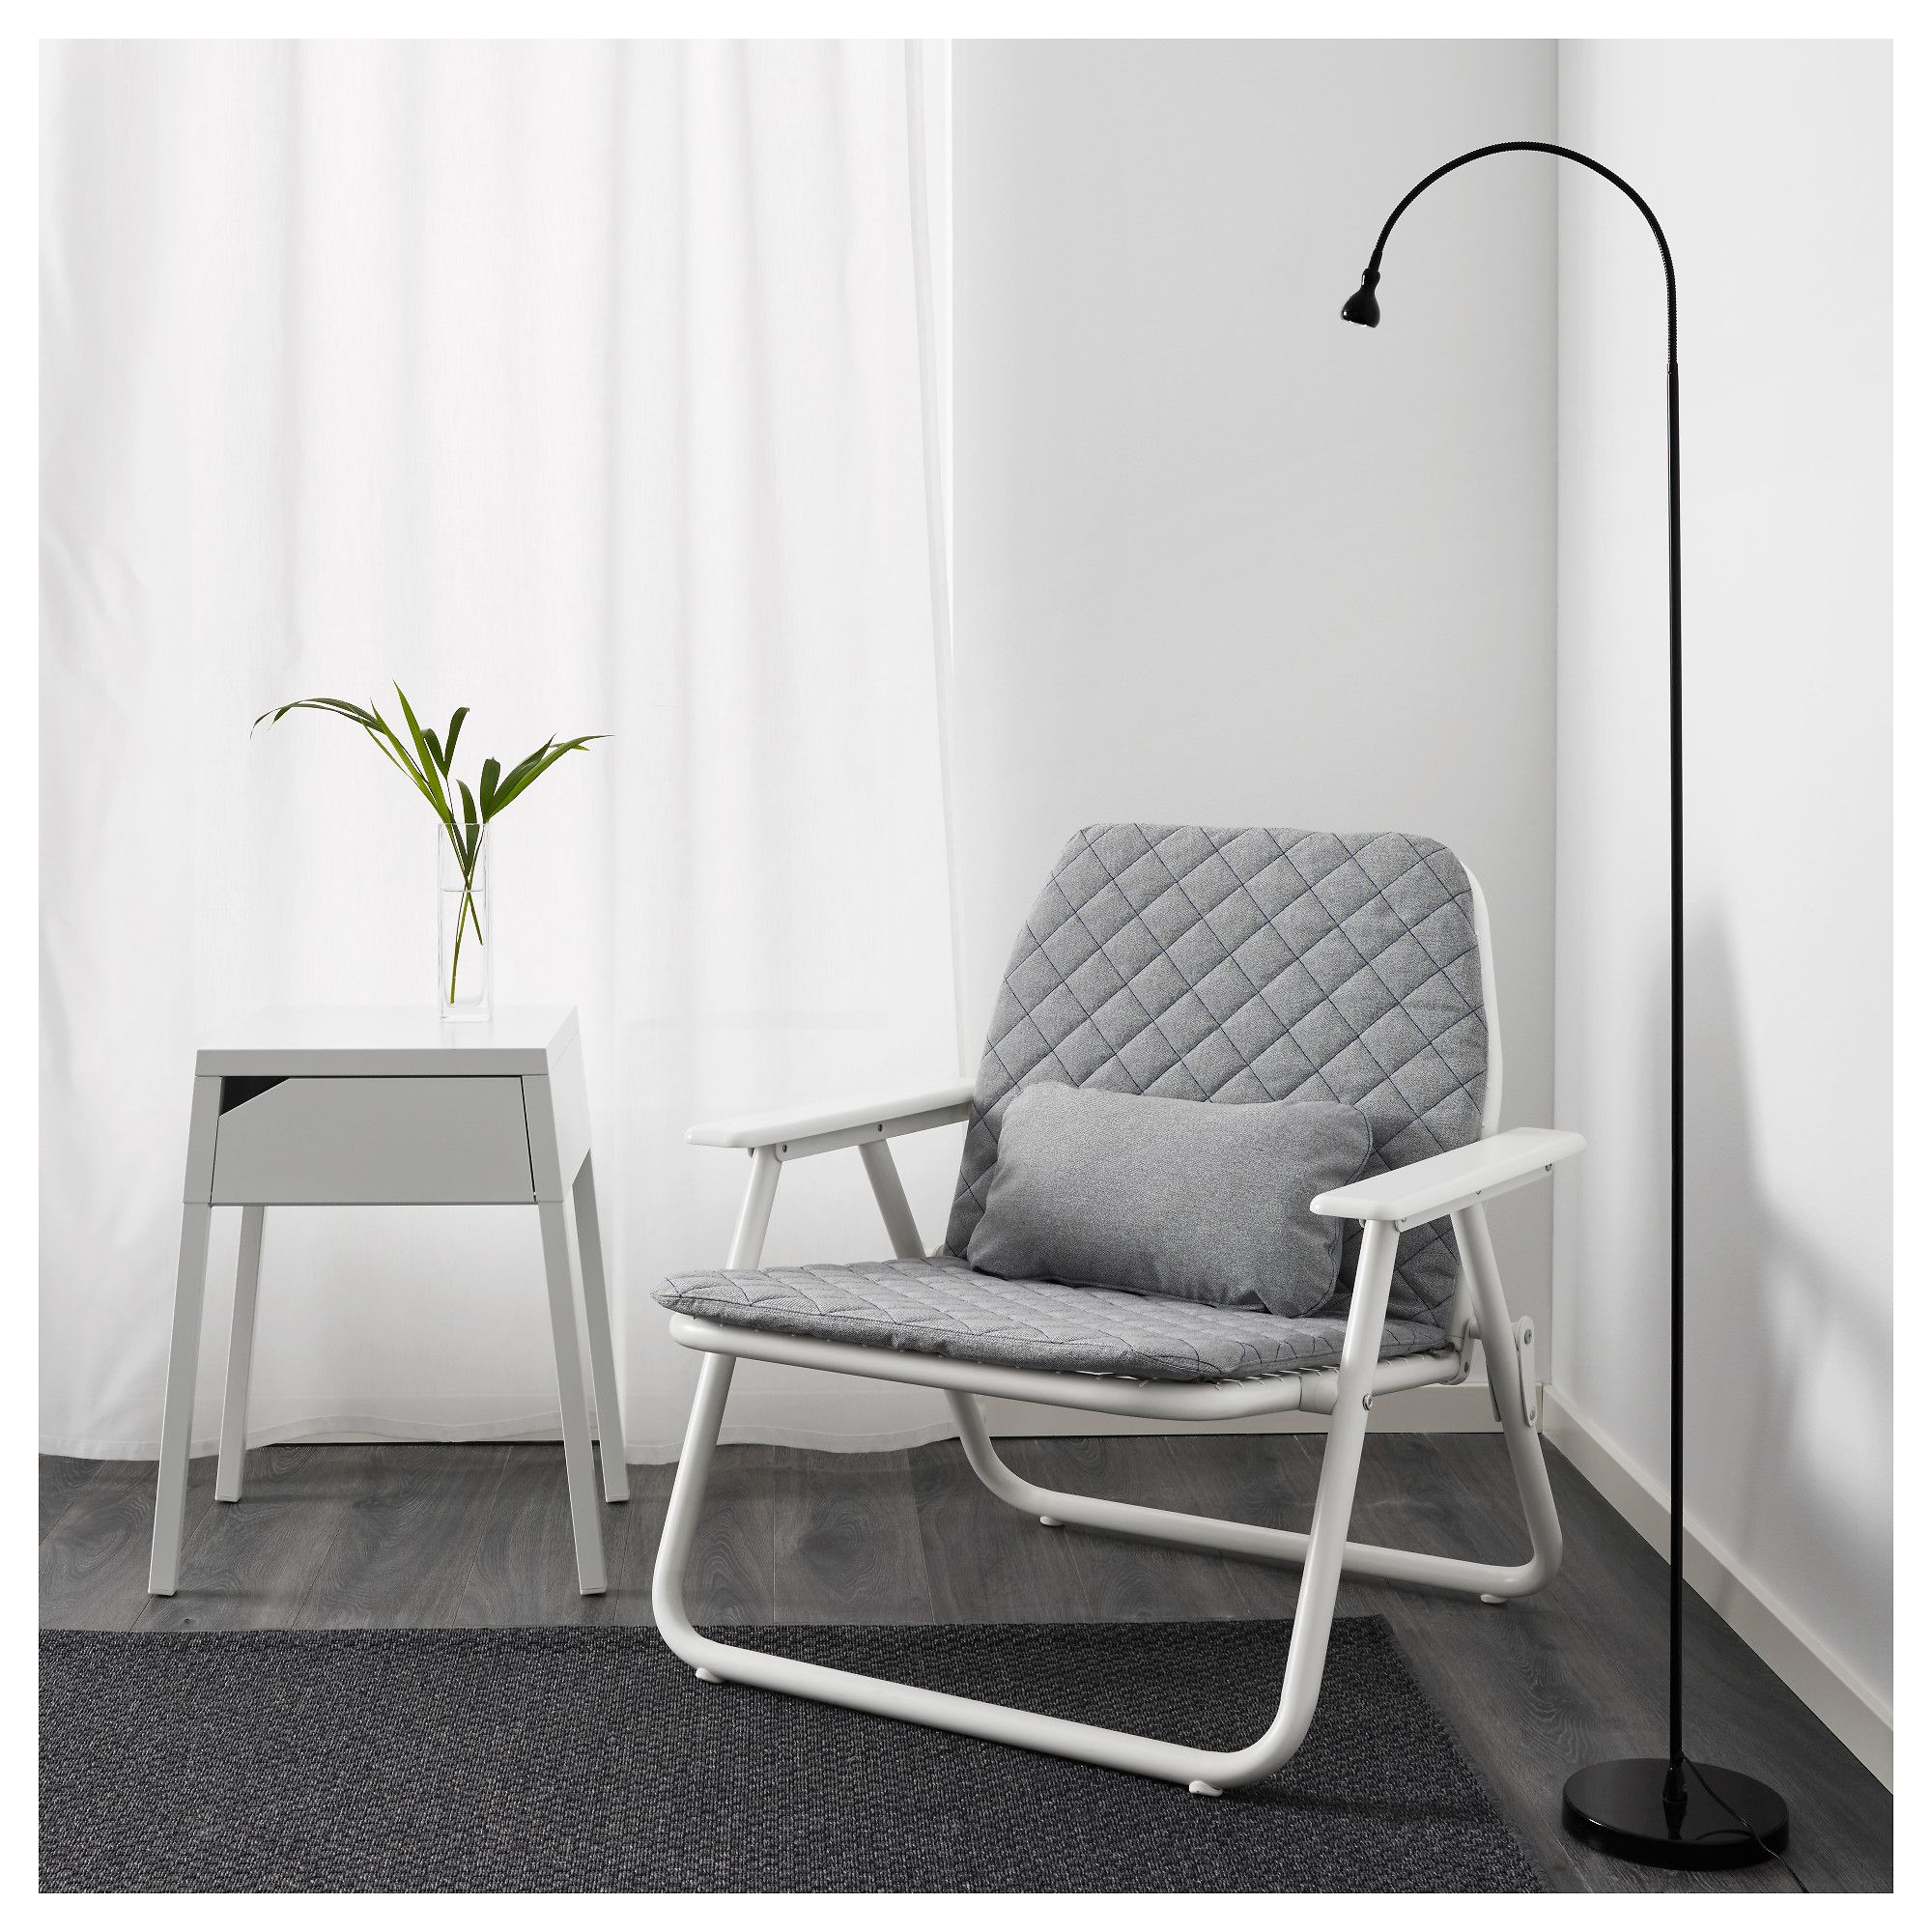 Ikea Ps 2017 Folding Armchair Folding Ikea For The Home In 2018